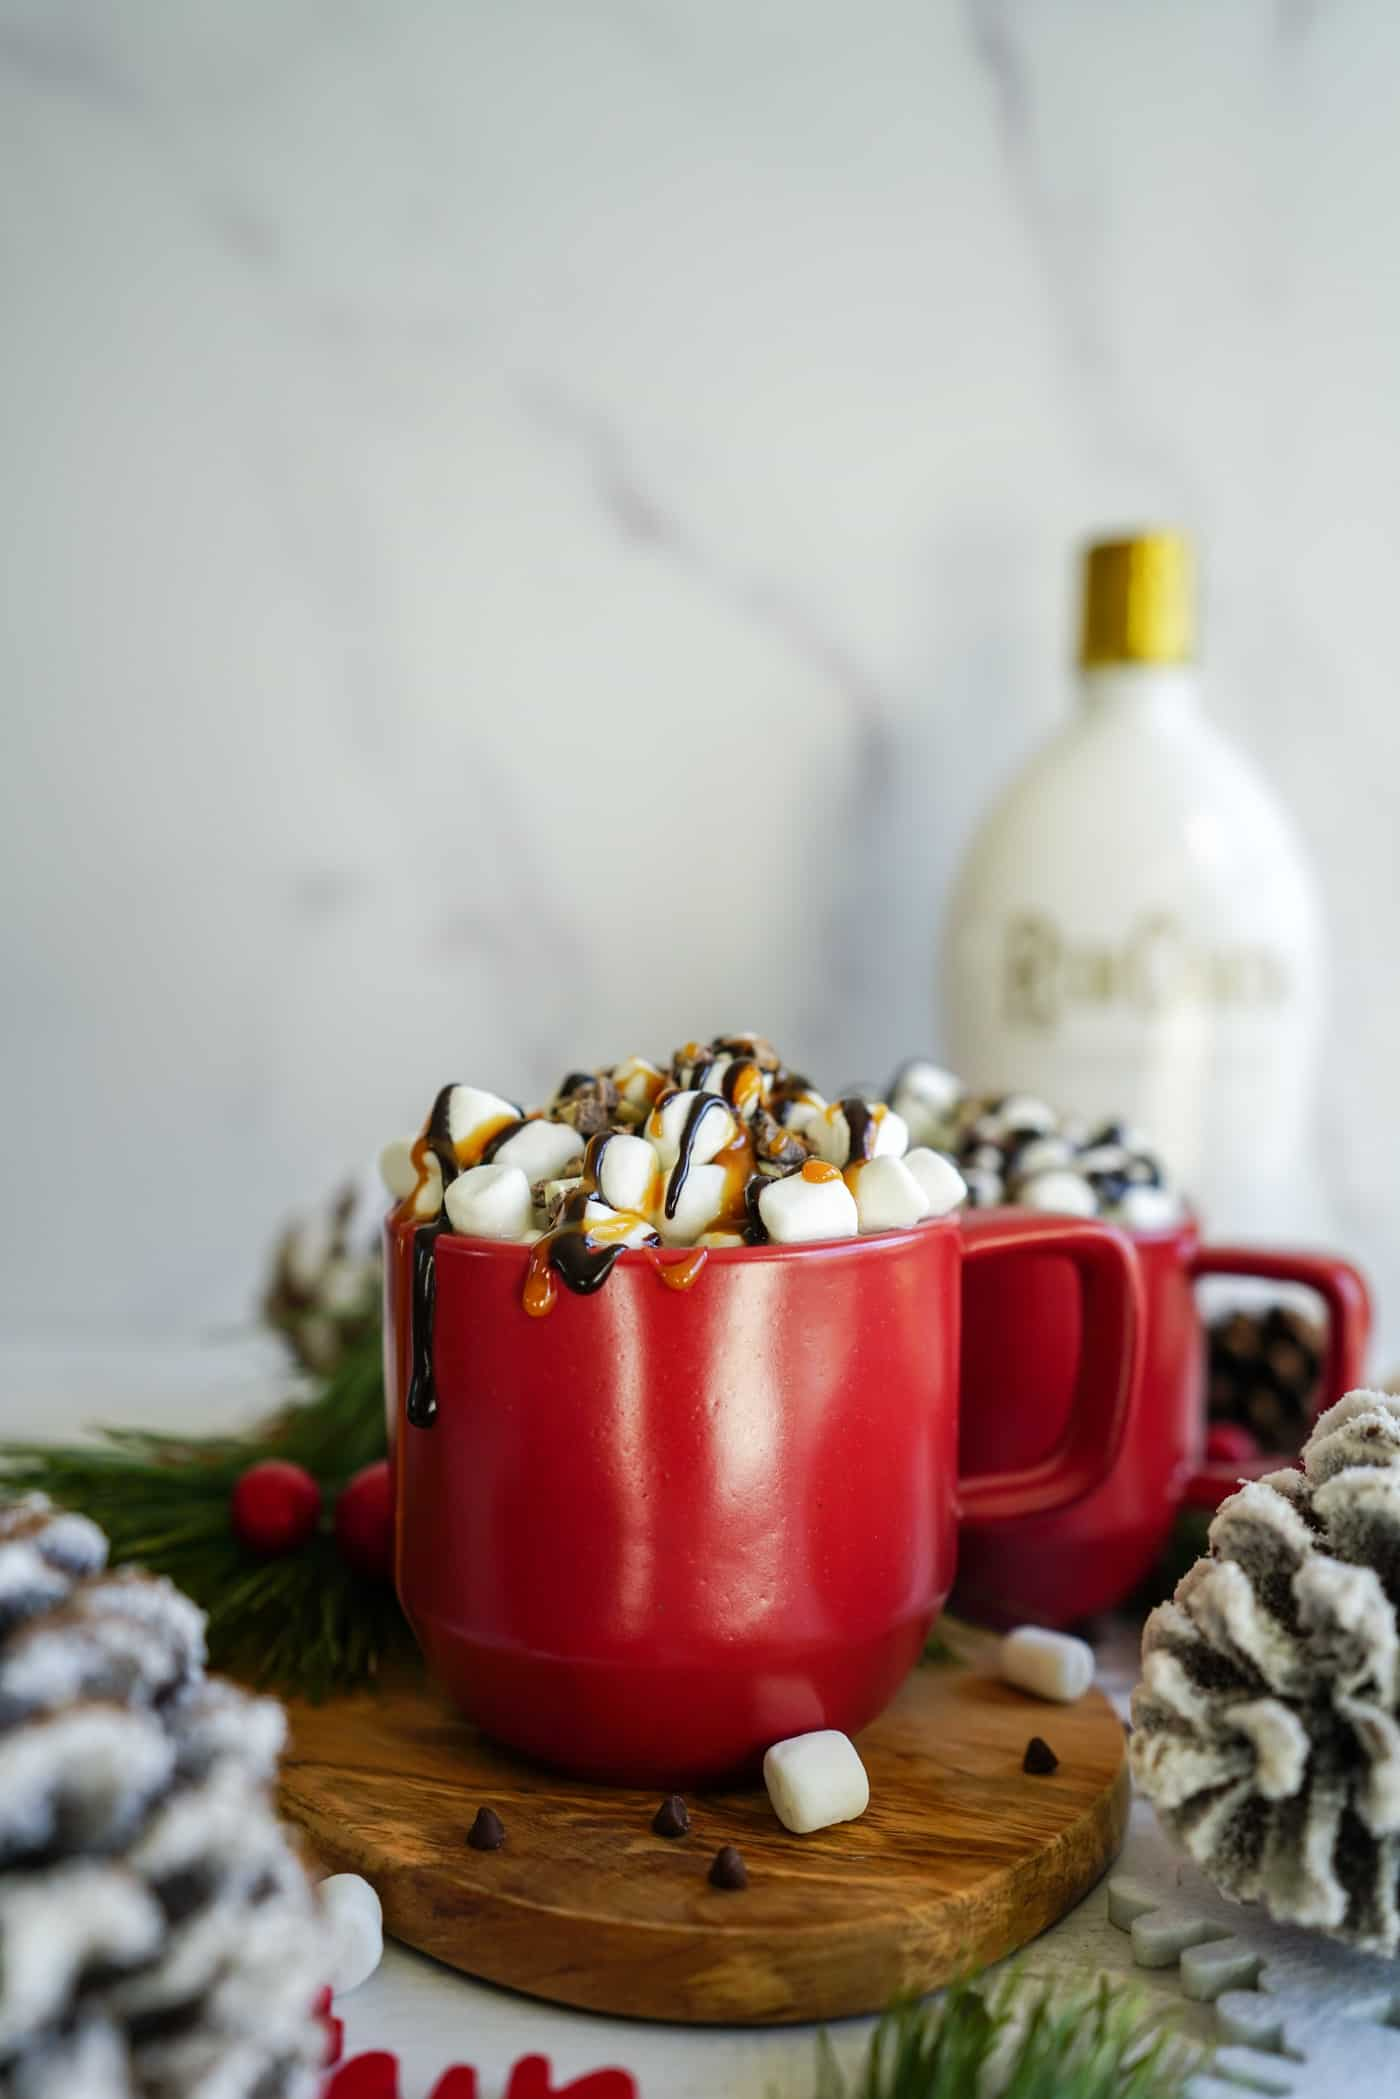 A Lily Love Affair shares an easy recipe for rumchata hot chcololate topped with chocolate sauce